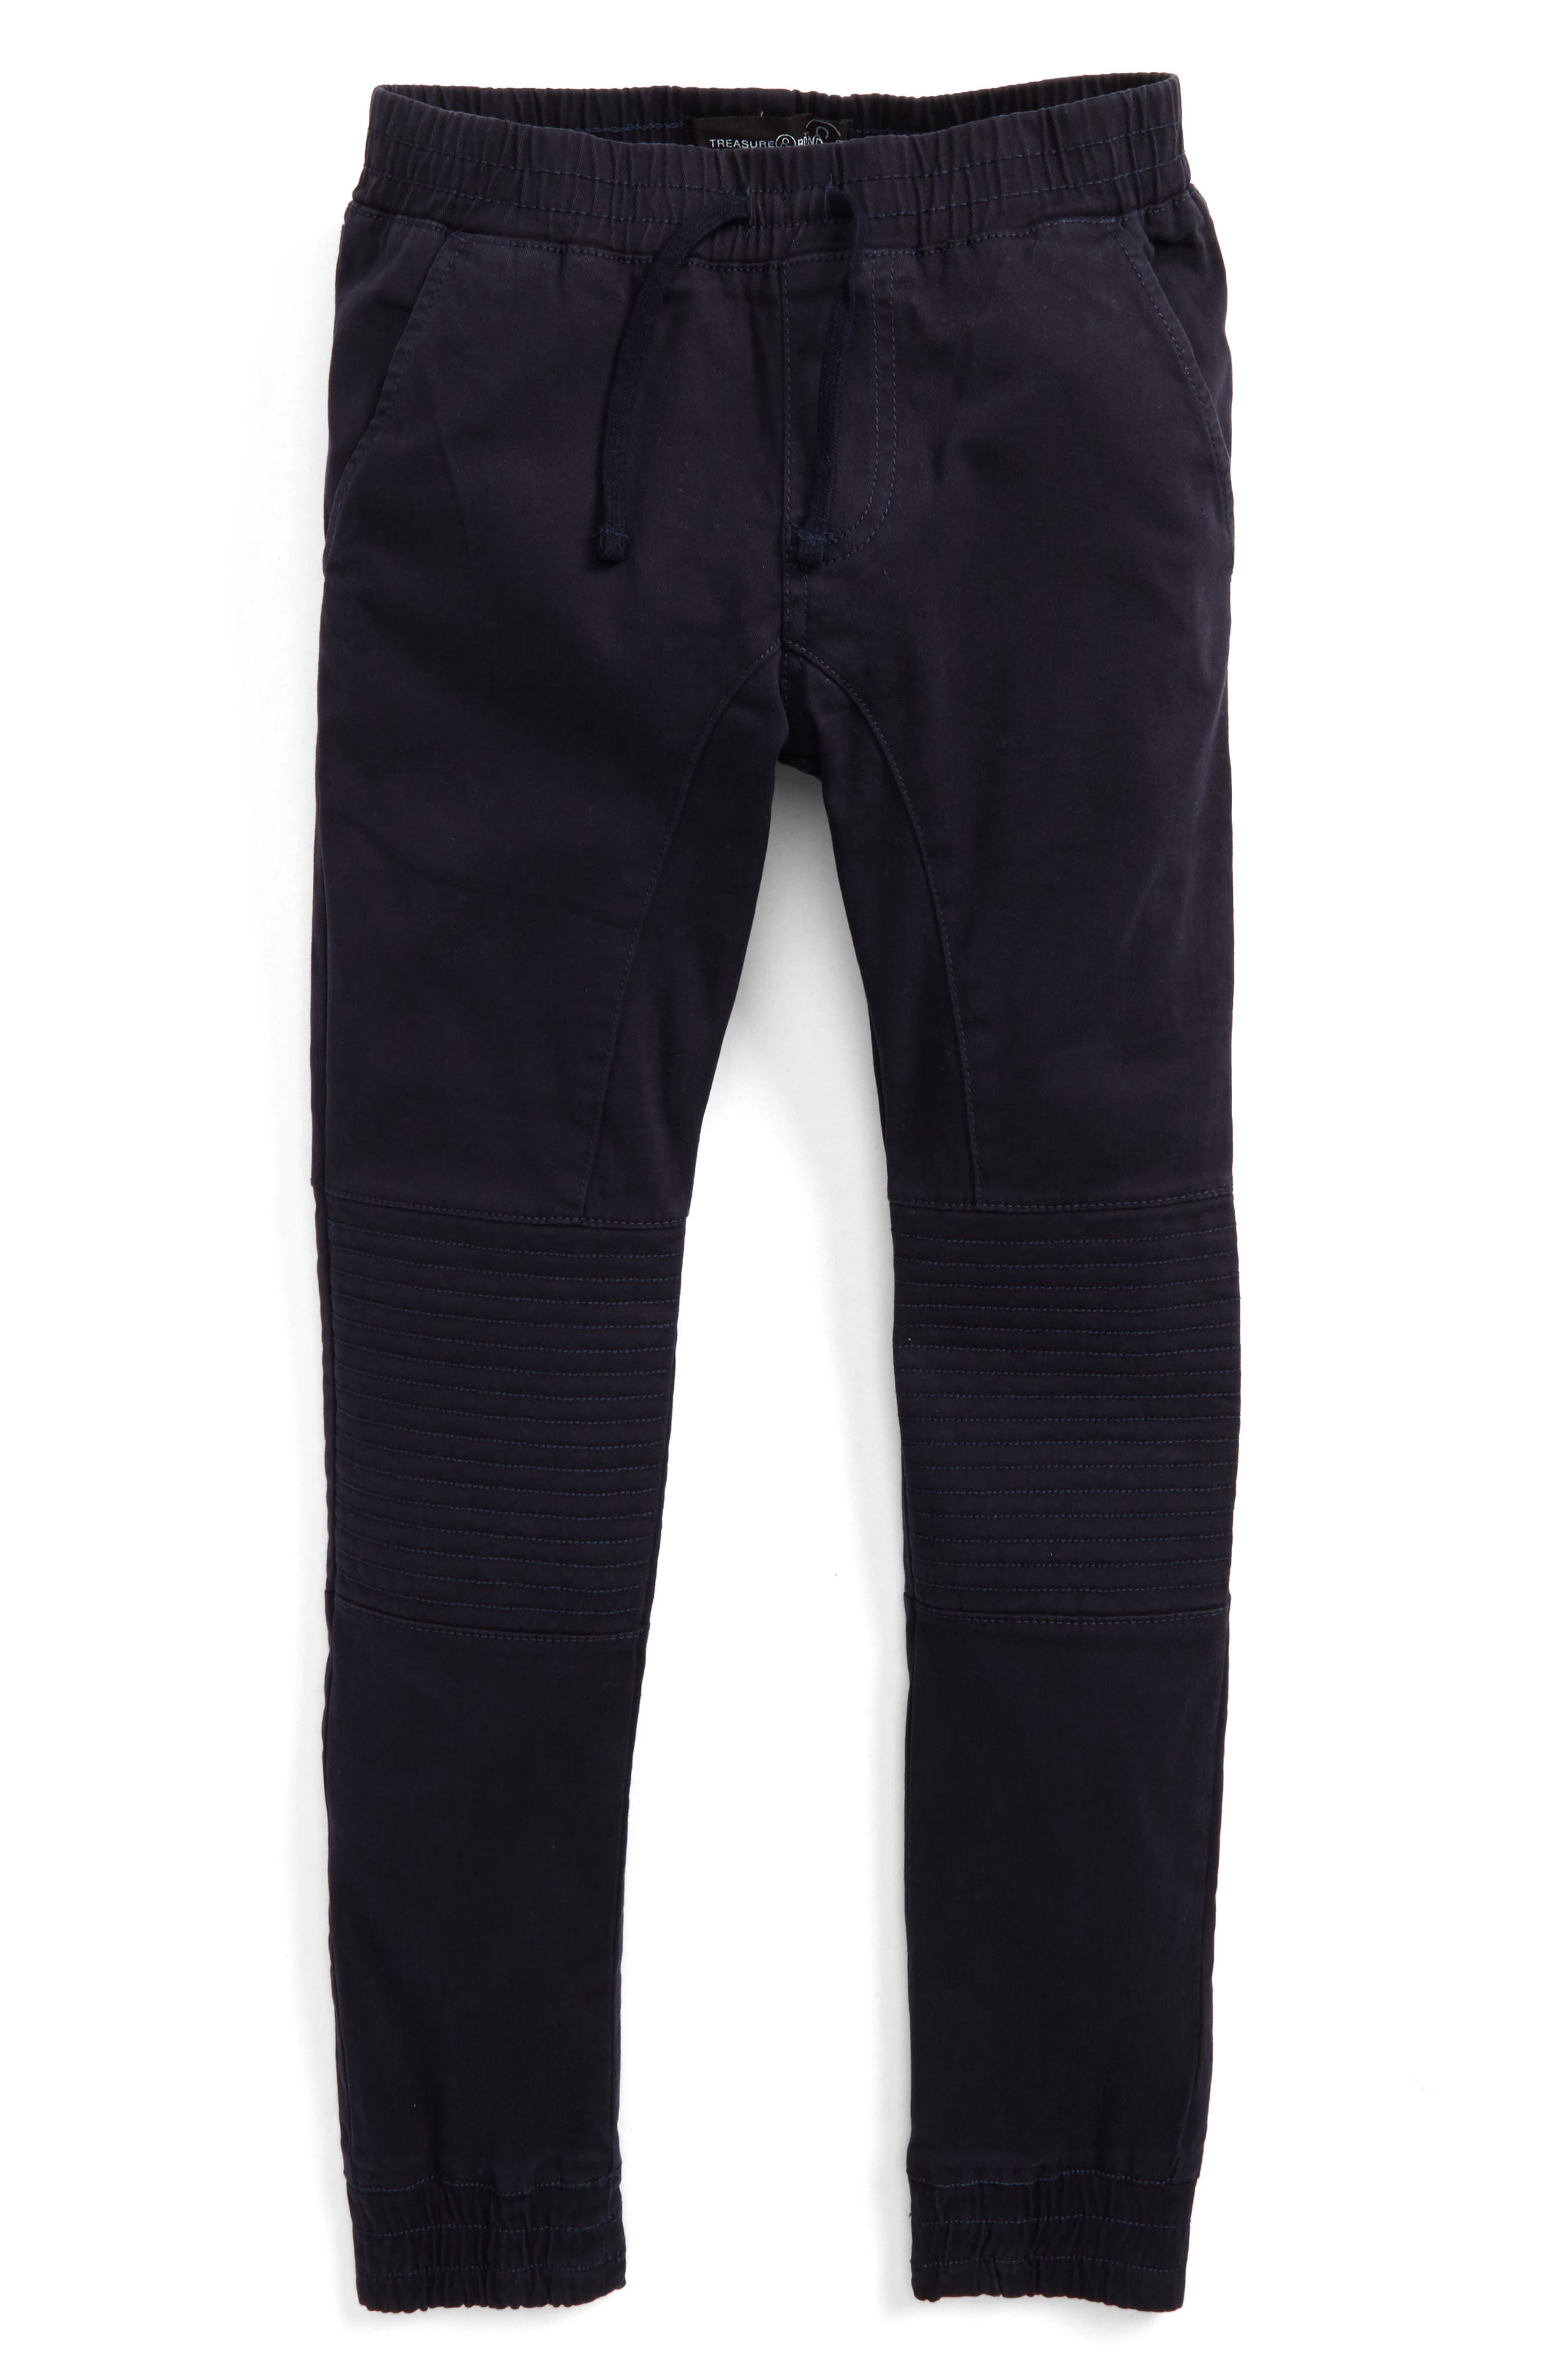 Moto Jogger Pants,                         Main,                         color, Navy Night